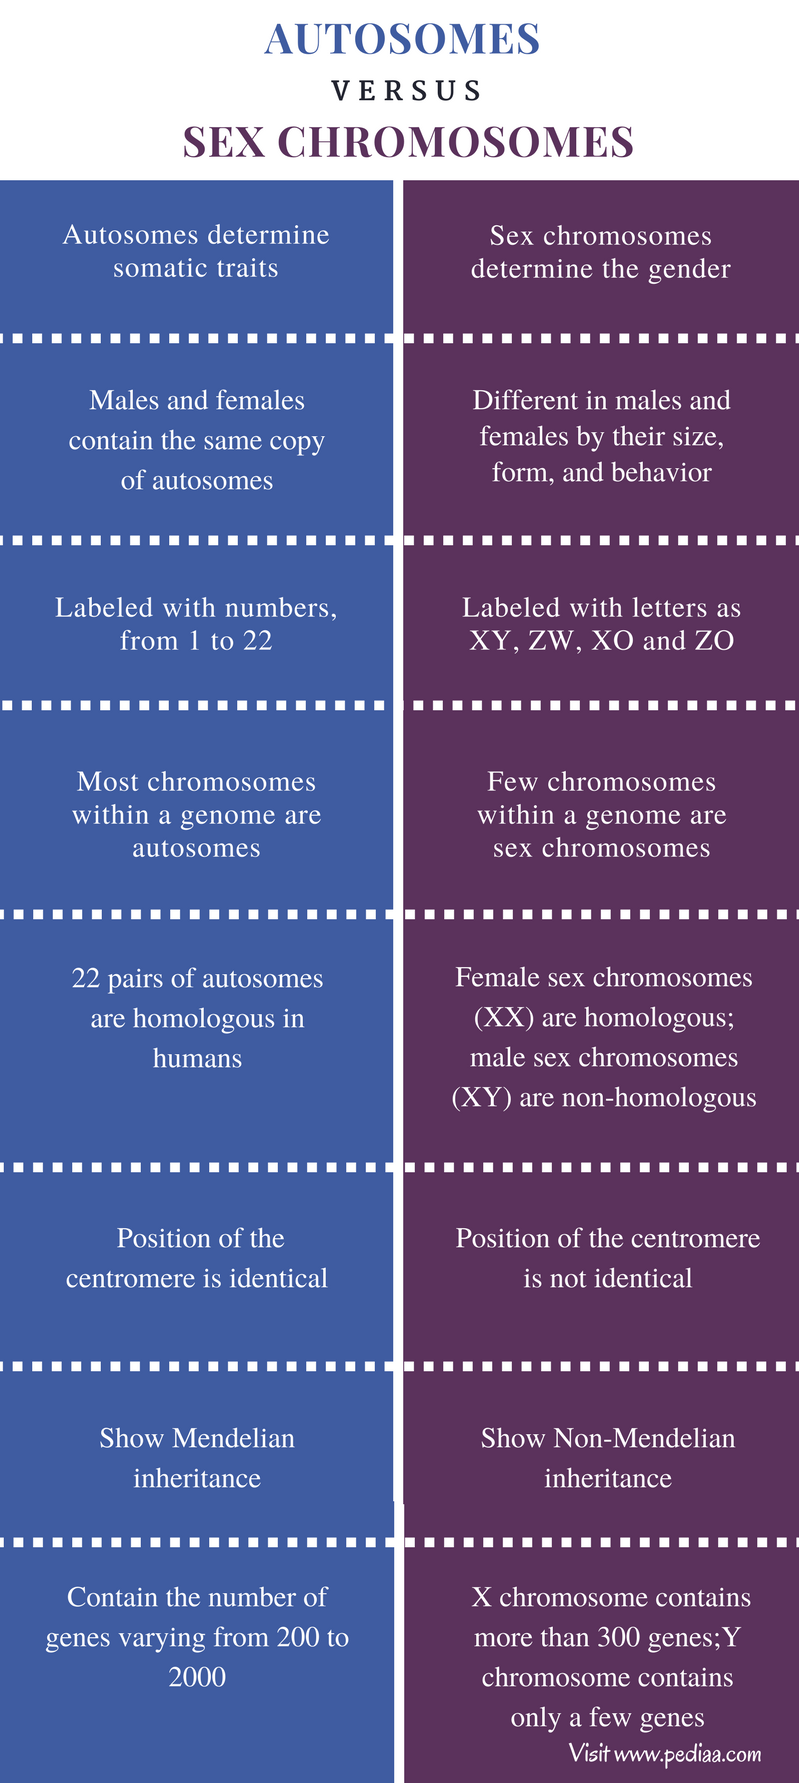 Contrast sex chromosomes with autosomes pics 64